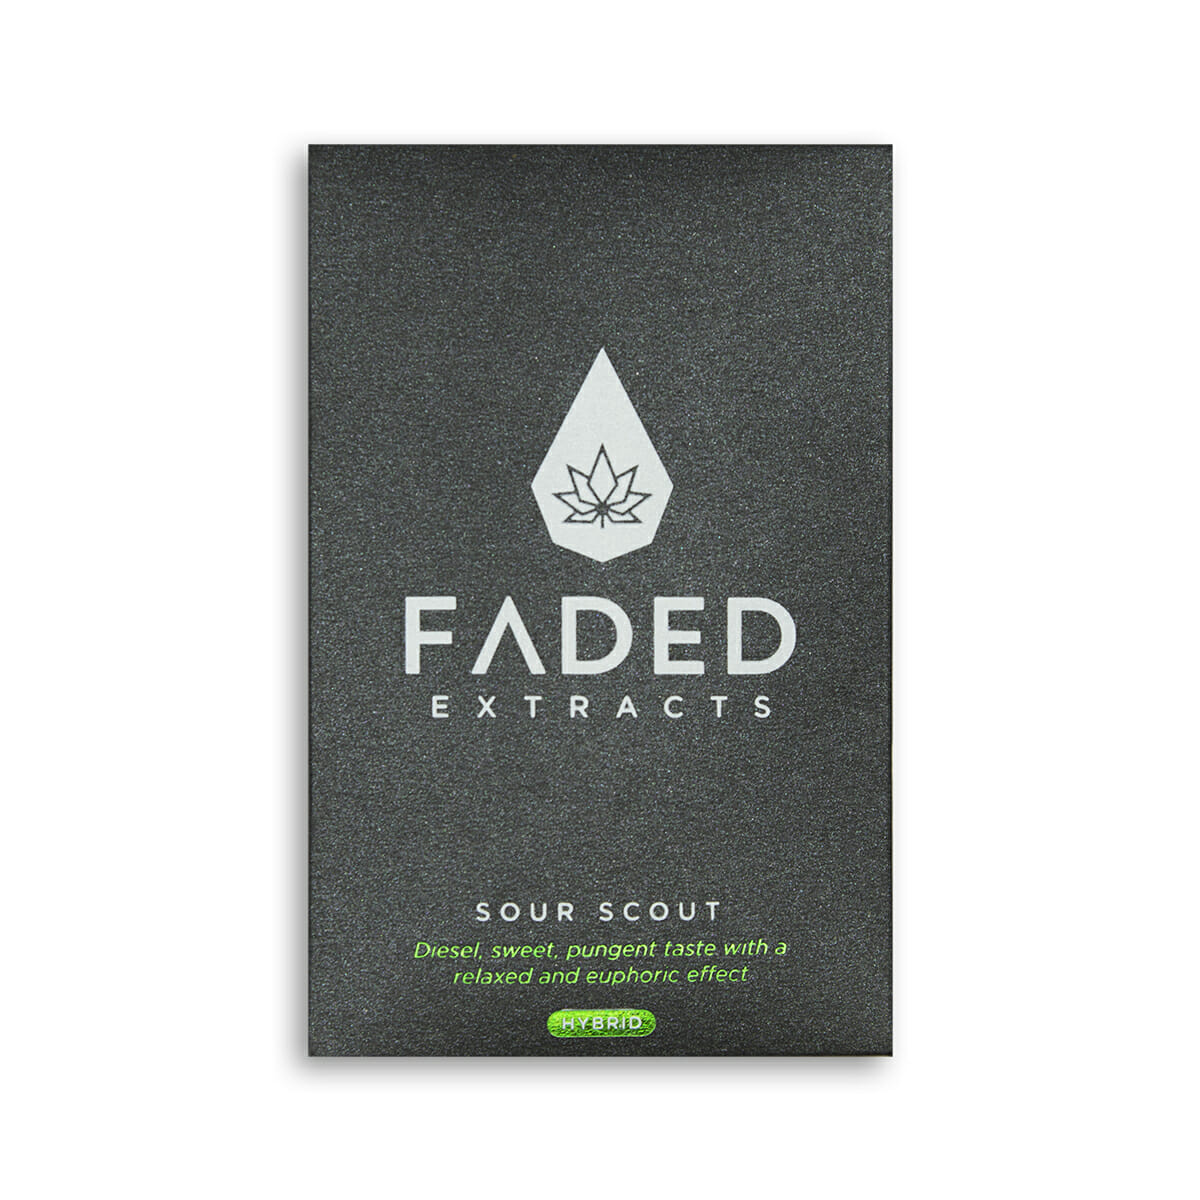 Faded shatter in toronto same day